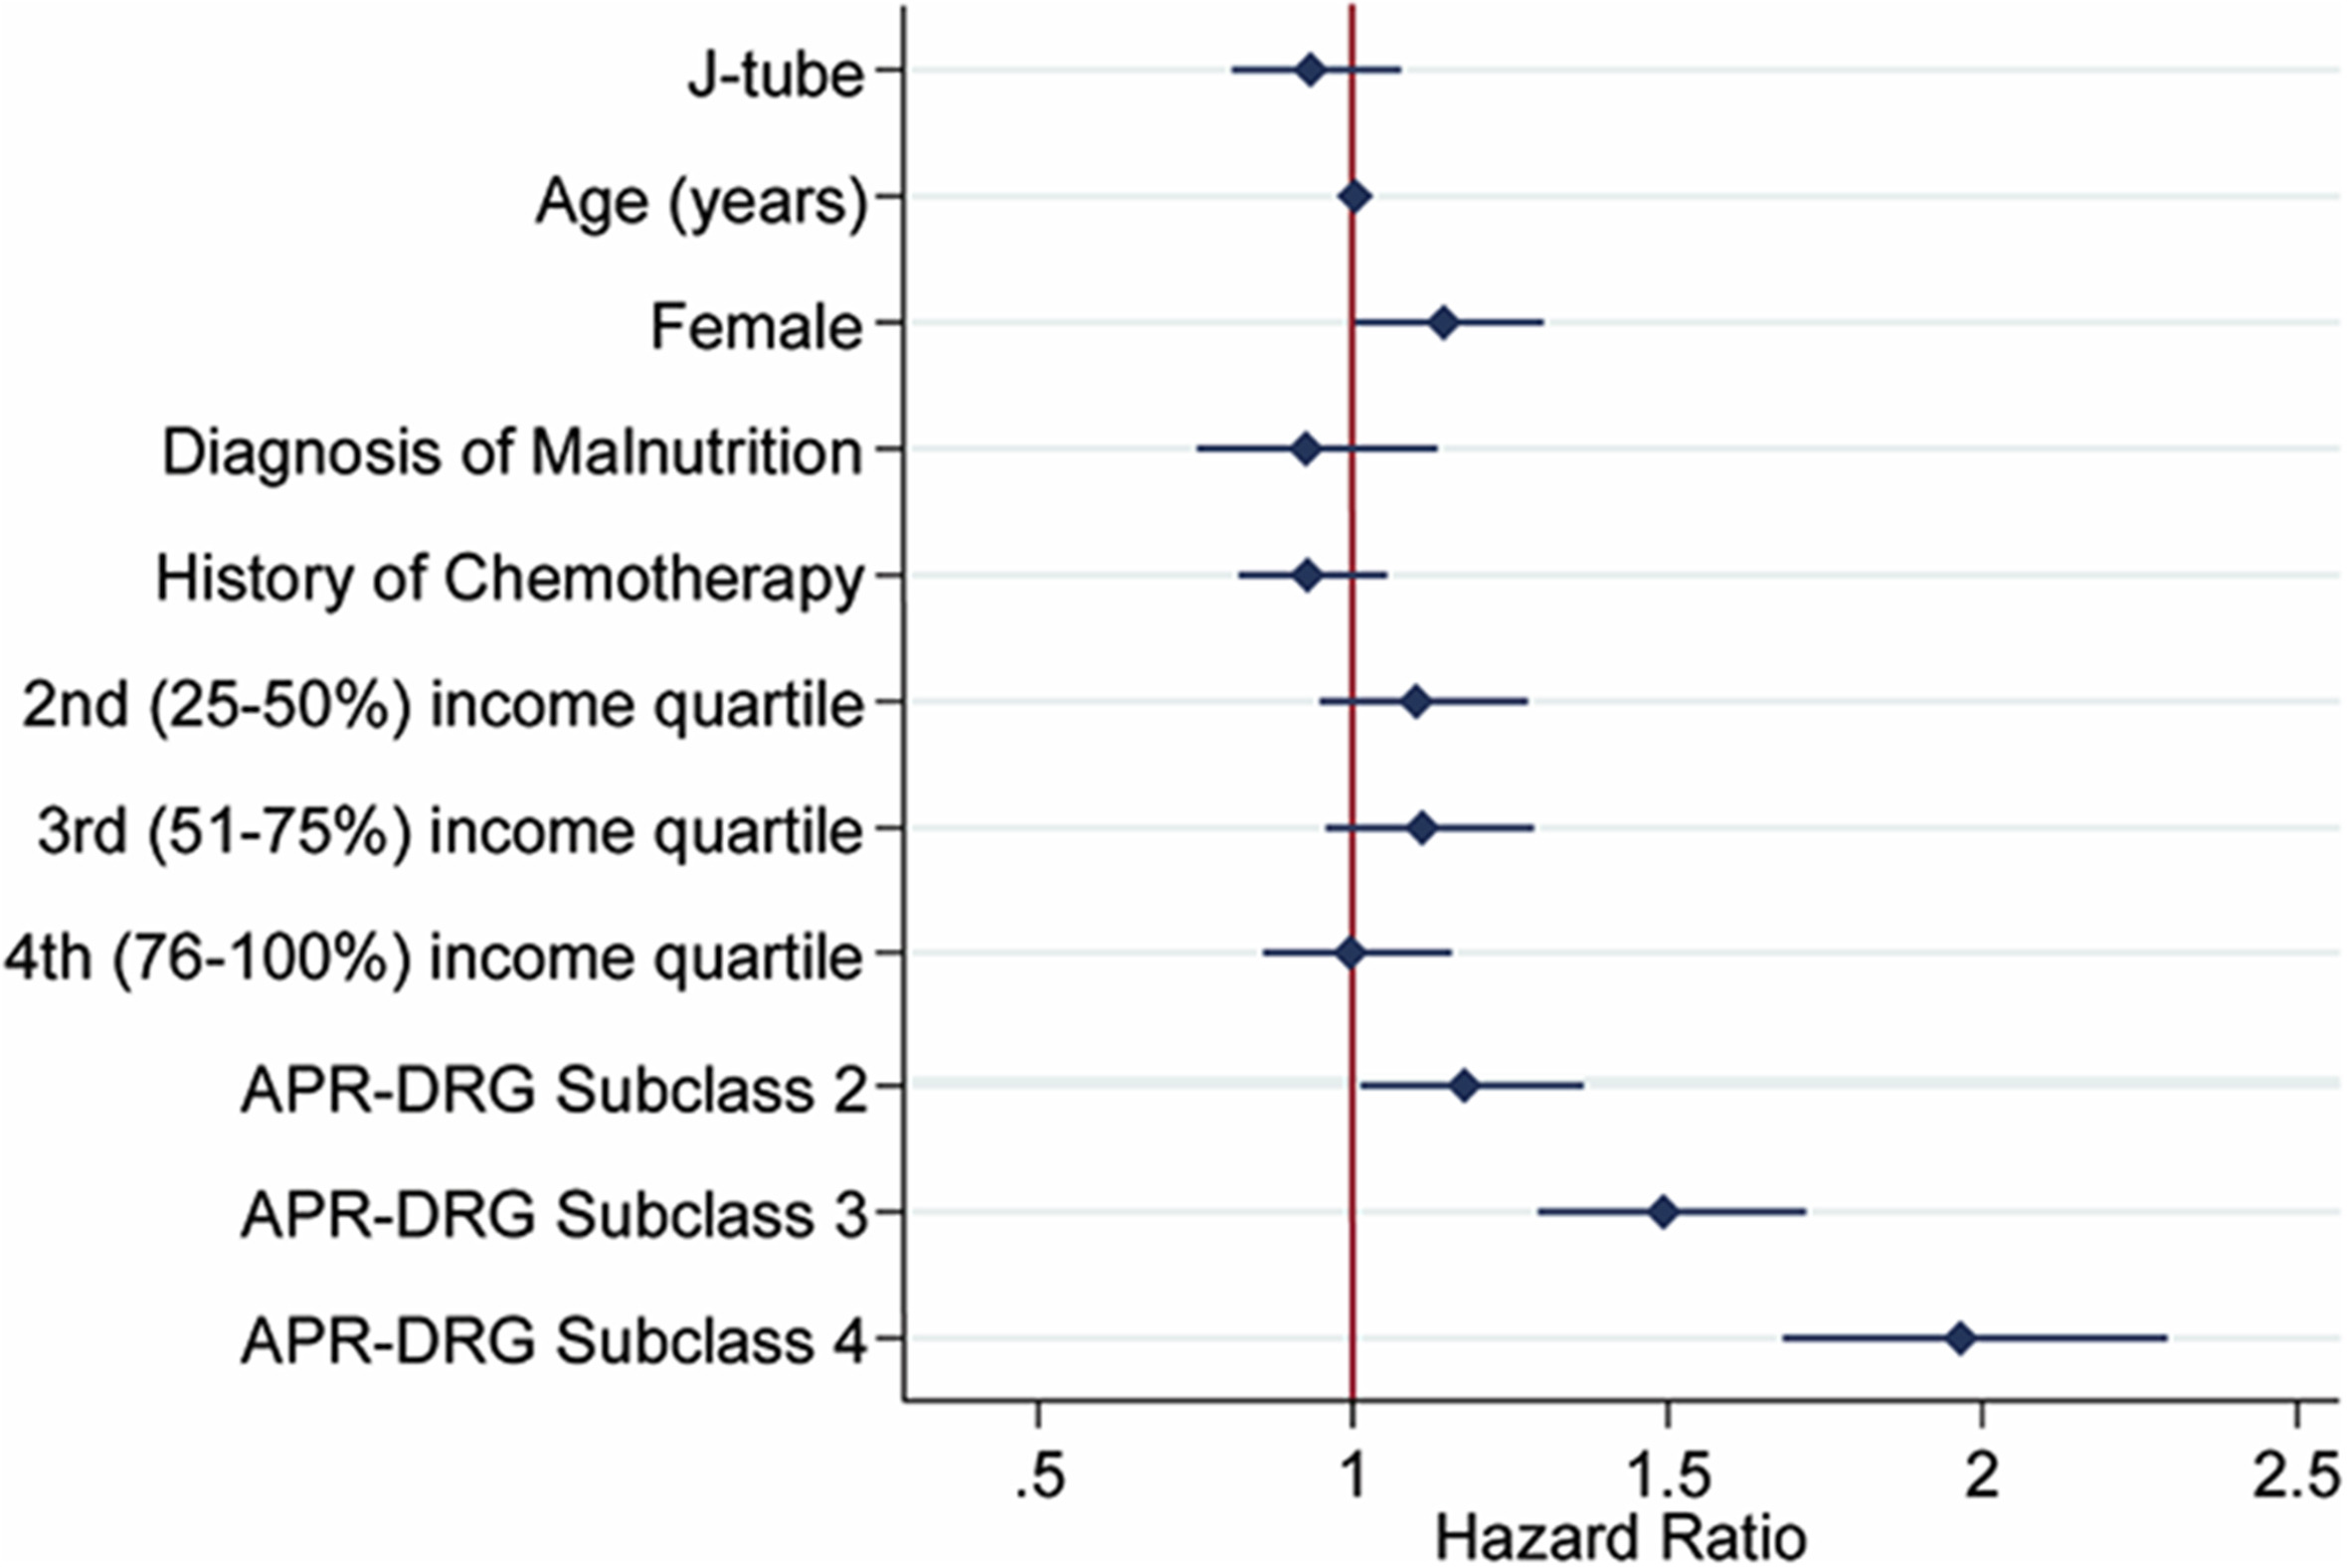 Is the placement of jejunostomy tubes in patients with esophageal cancer undergoing esophagectomy associated with increased inpatient healthcare utilization? An analysis of the National Readmissions Database